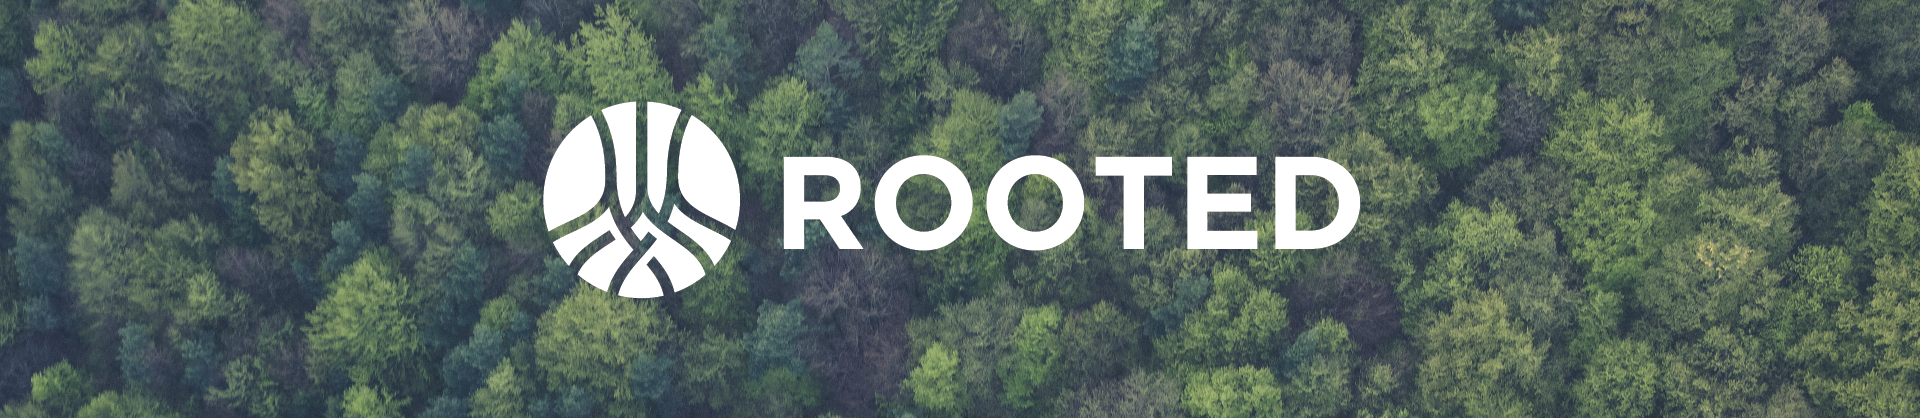 Rooted Header Image (thin)-01.png